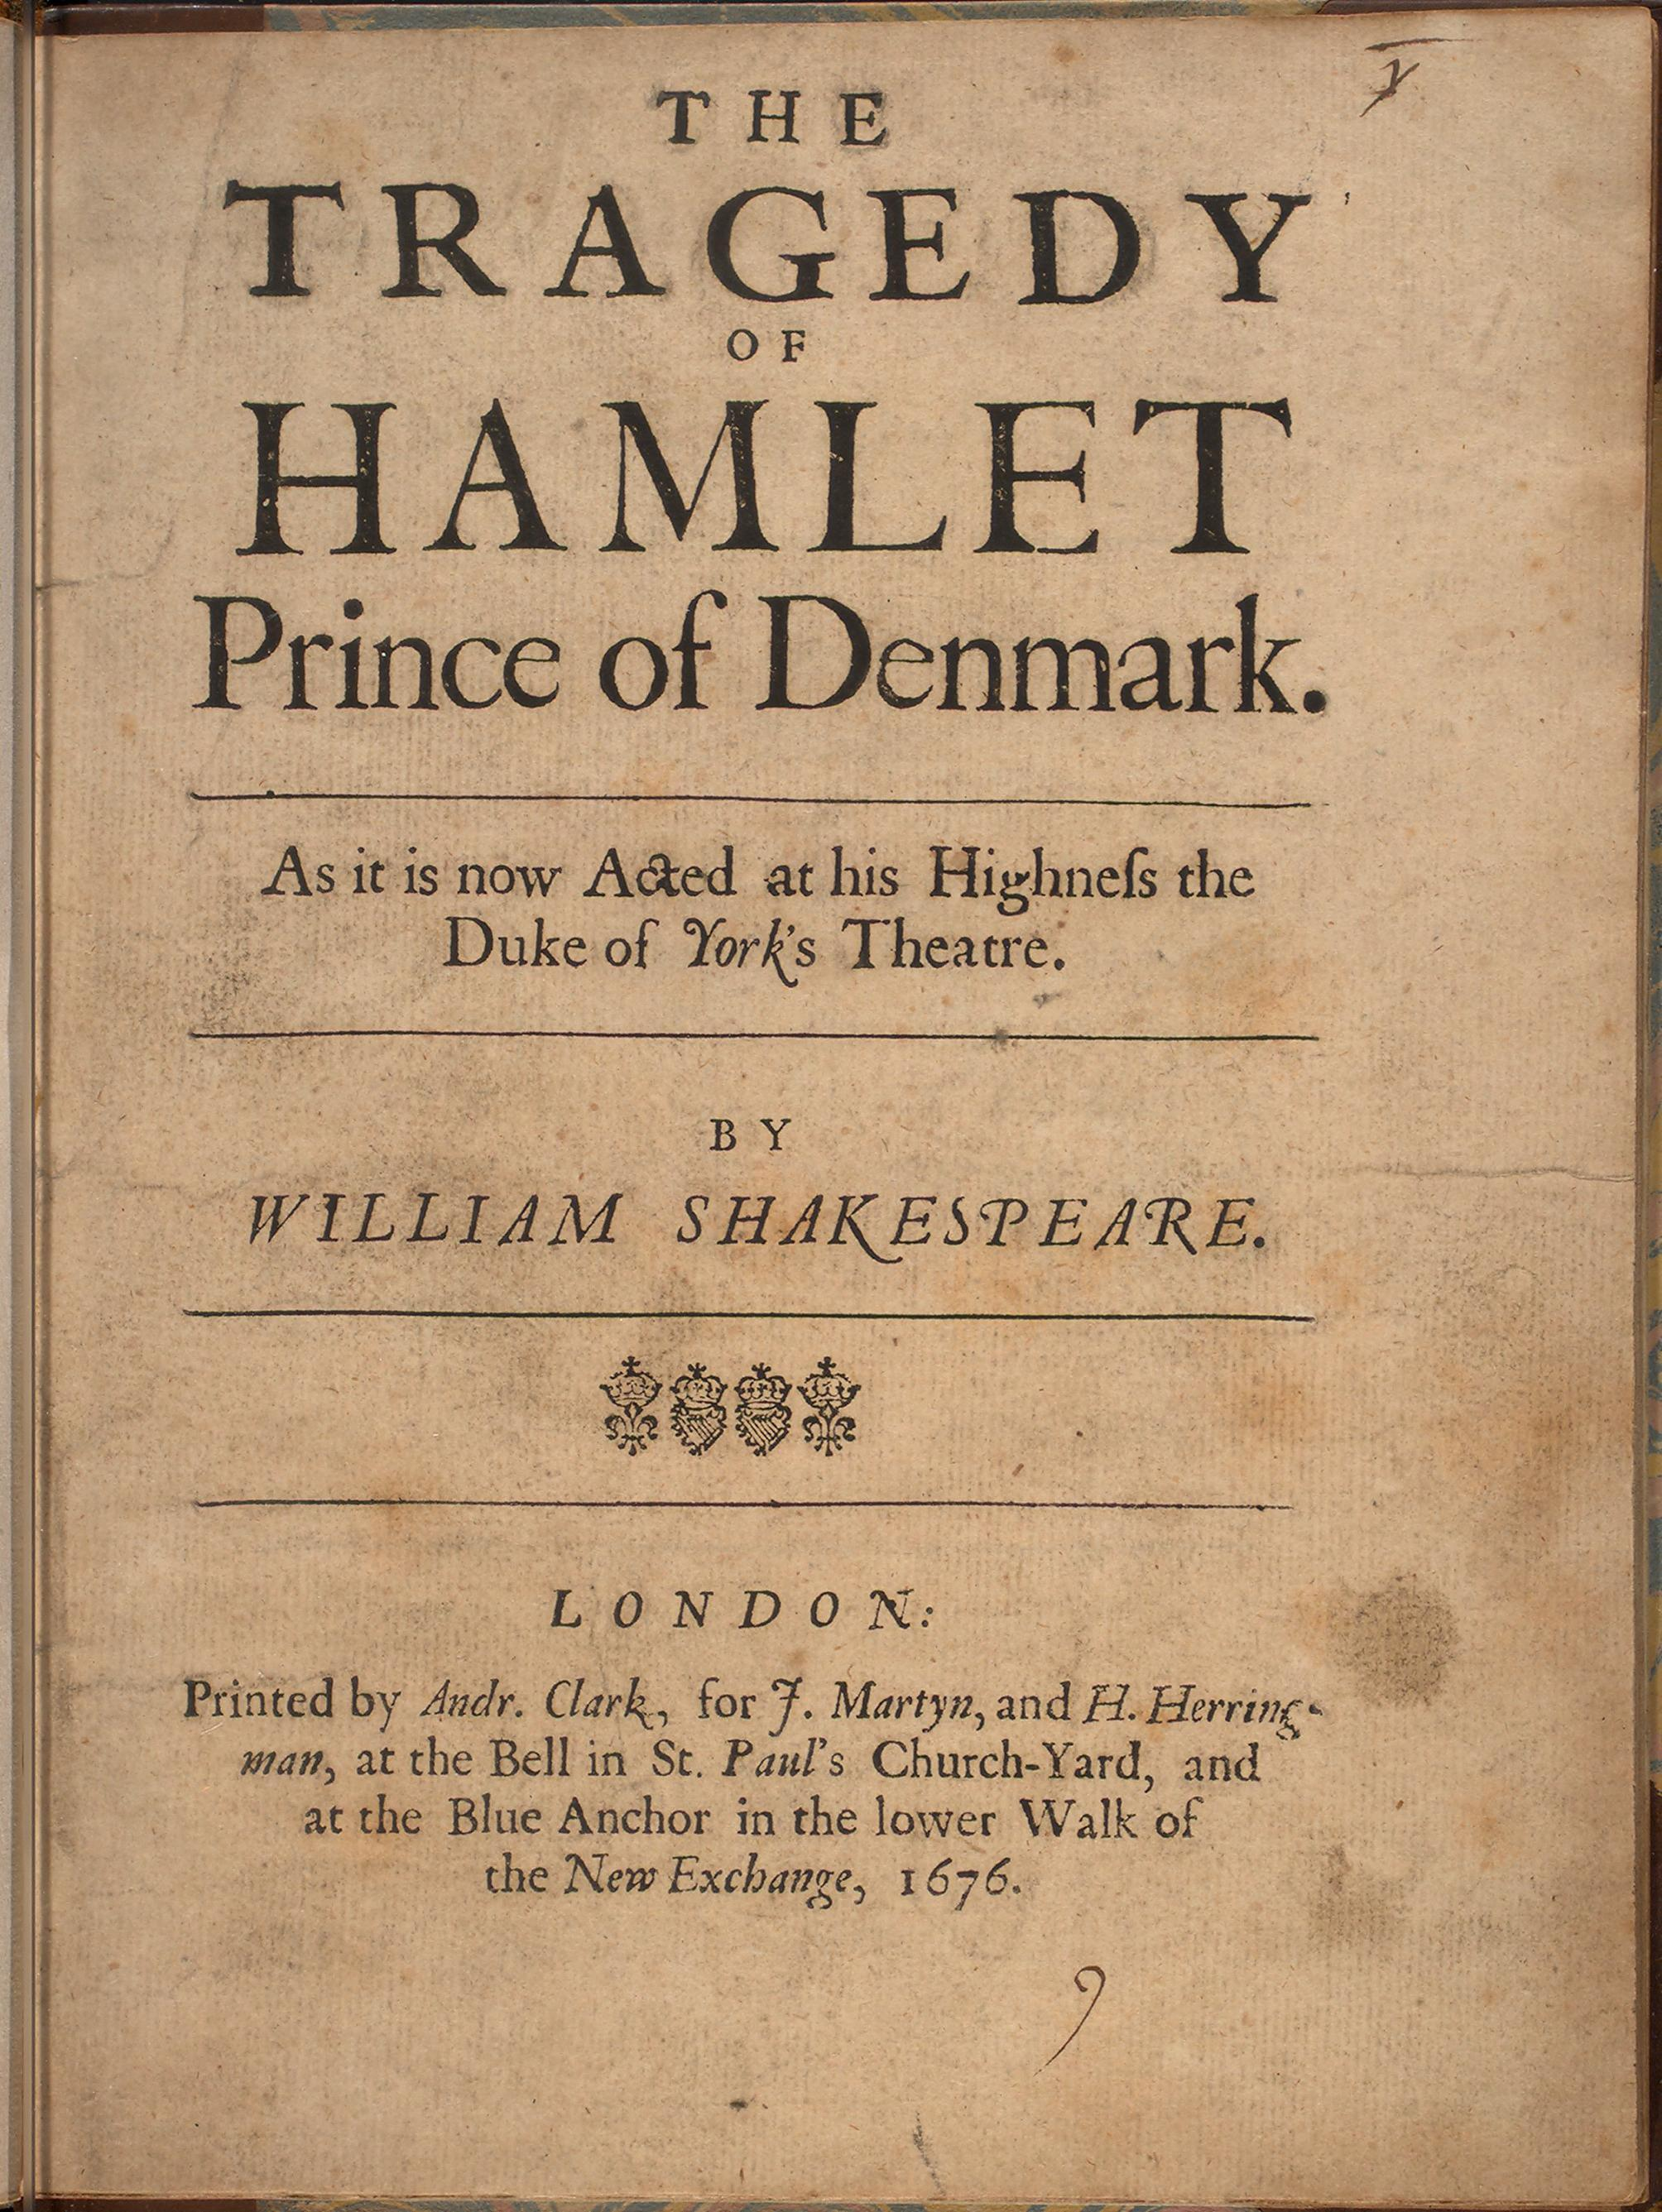 an analysis of hamlet as a hero in a play by william shakespeare In this play, hamlet is the tragic hero as cite strong and thorough textual evidence to support analysis of the tragedy of hamlet by william shakespeare.